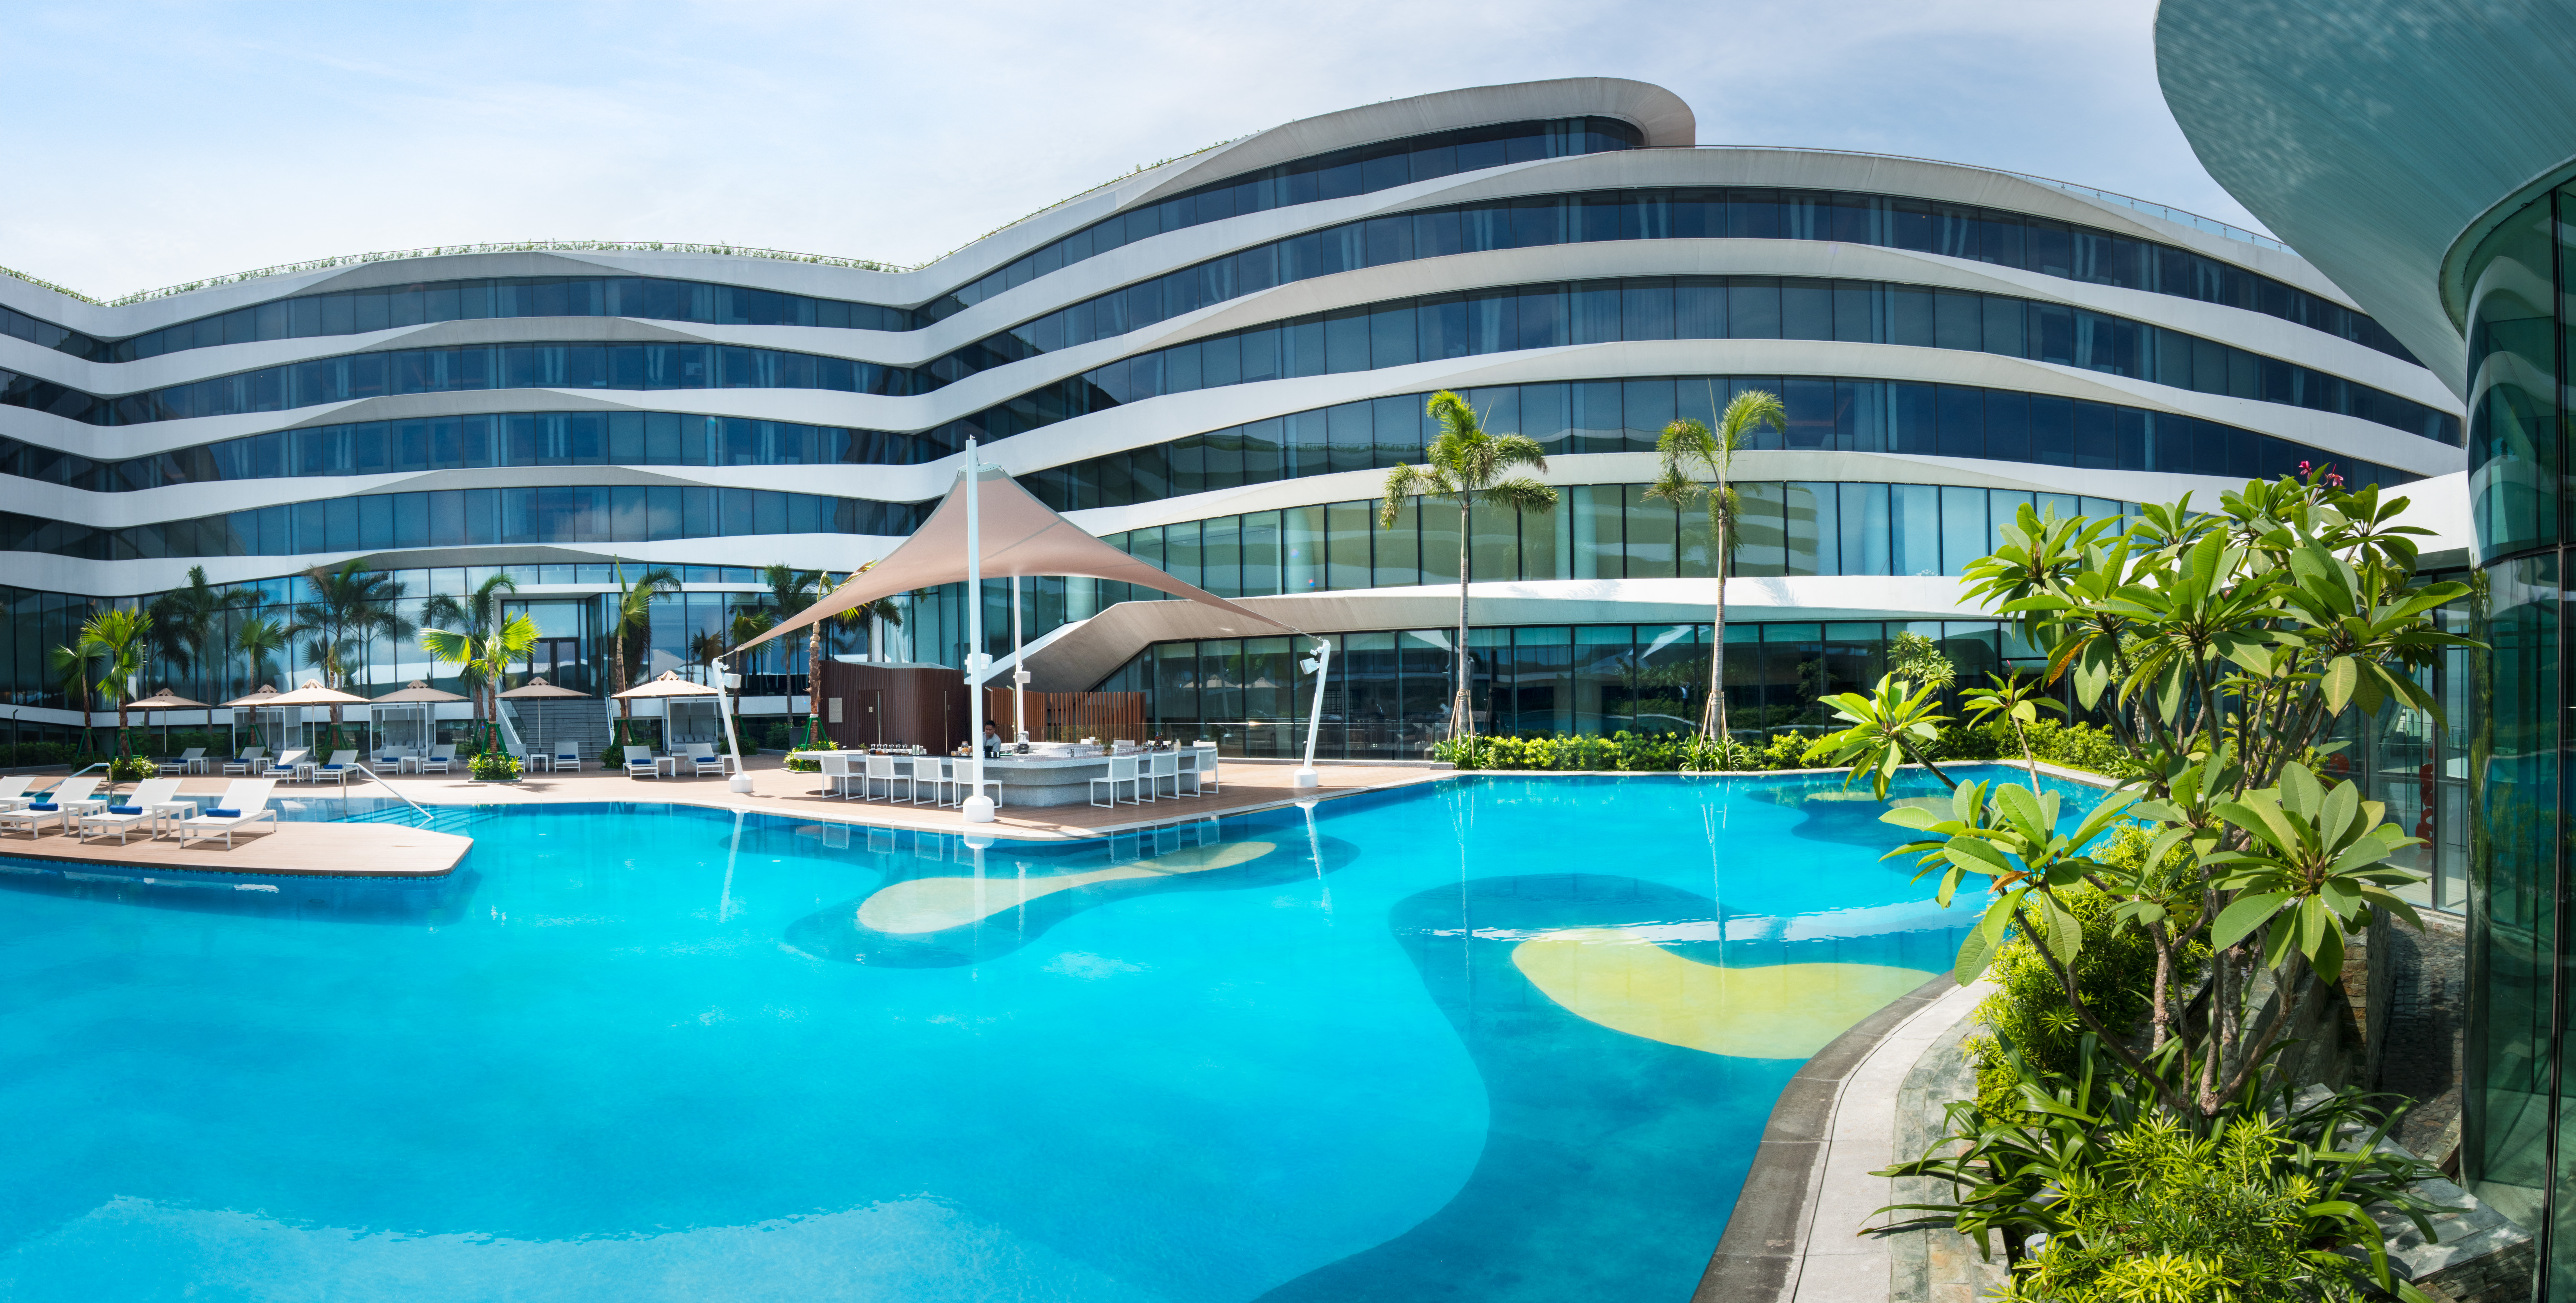 Conrad manila hungry hong kong for Hotel with swimming pool in manila